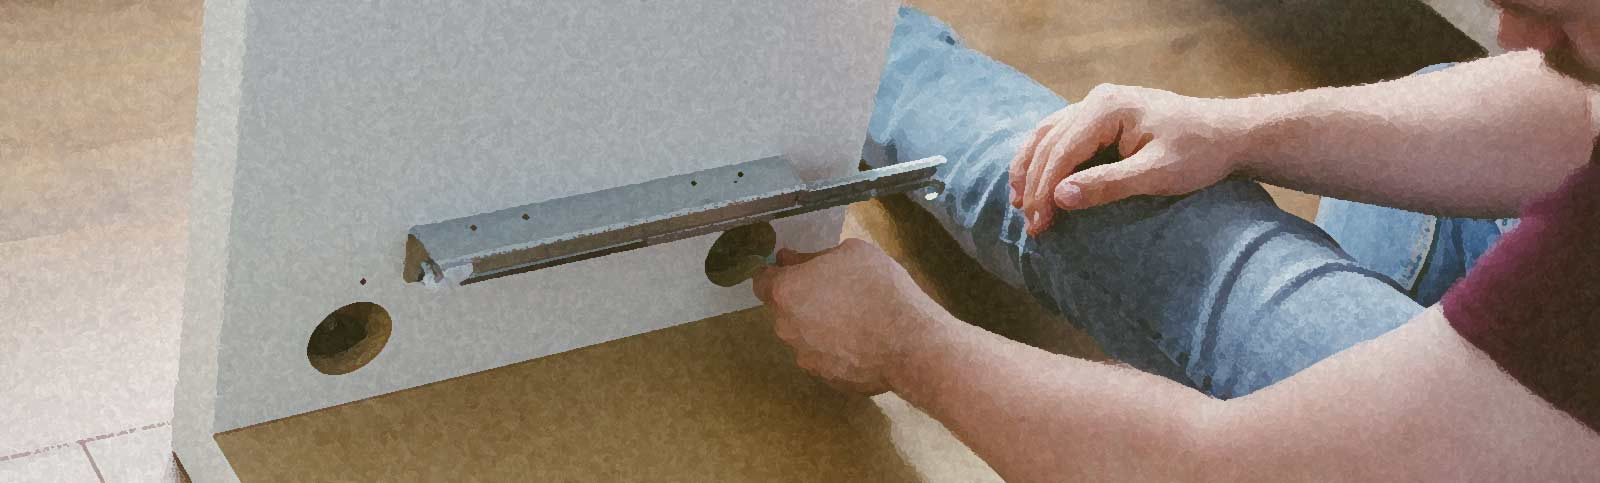 A Simple Guide to DIY Home Improvement Projects